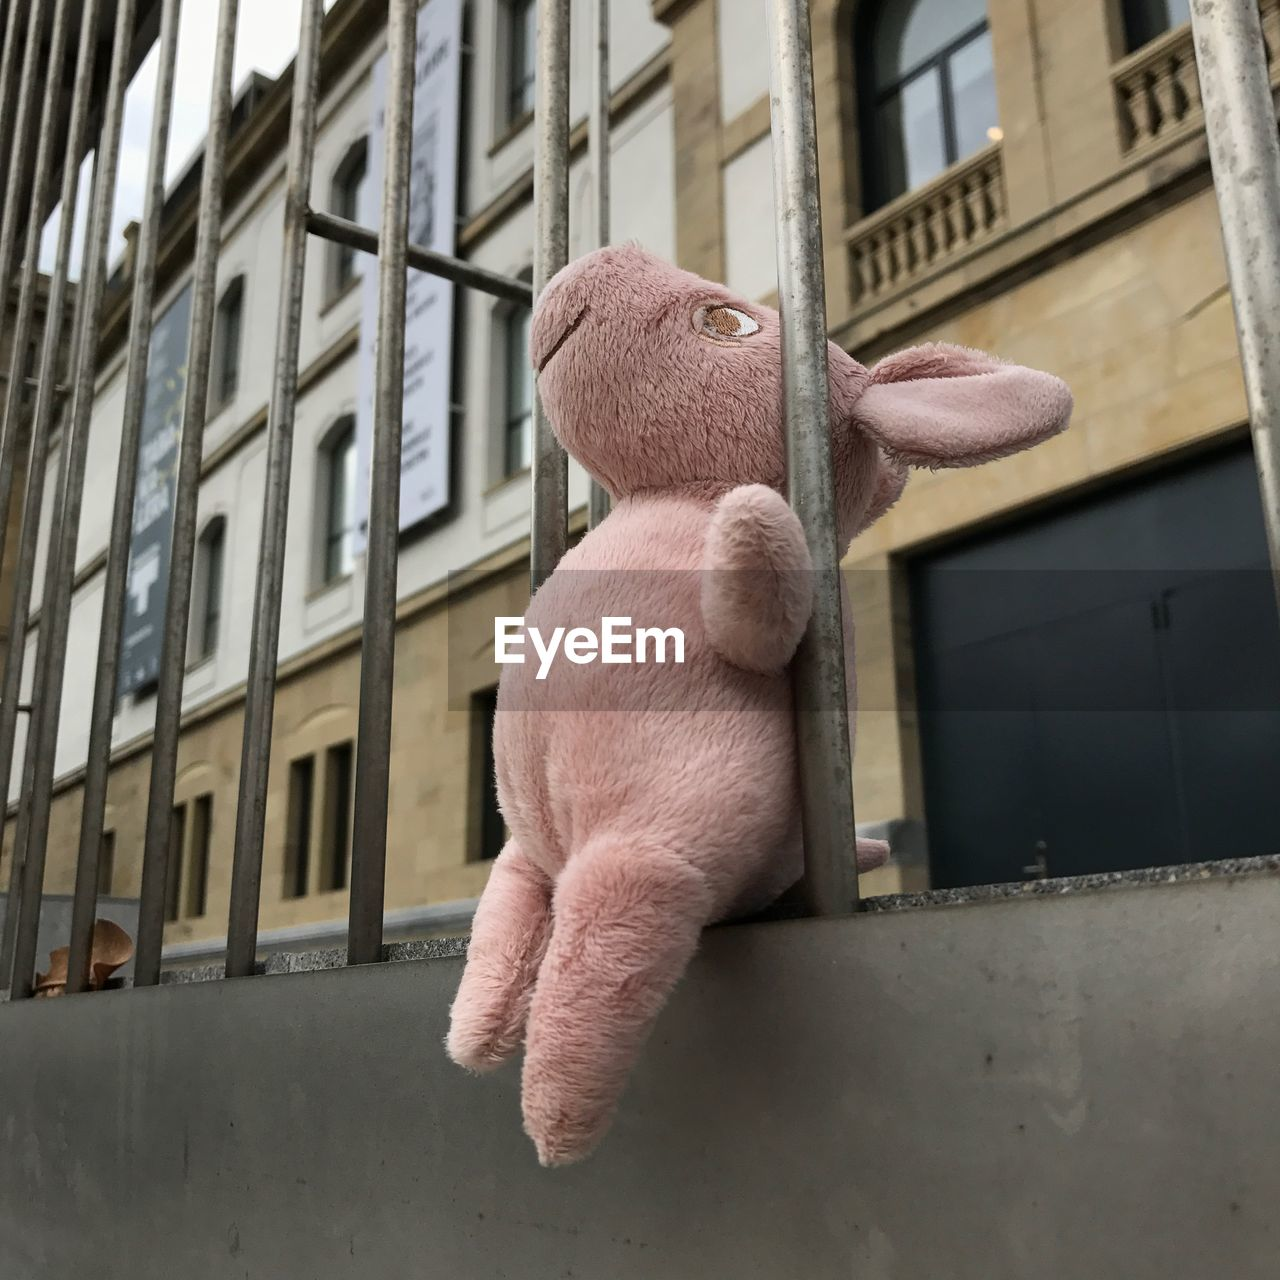 mammal, built structure, building exterior, architecture, animal themes, no people, animal, window, one animal, stuffed toy, domestic, day, domestic animals, animal representation, pets, building, representation, toy, pink color, outdoors